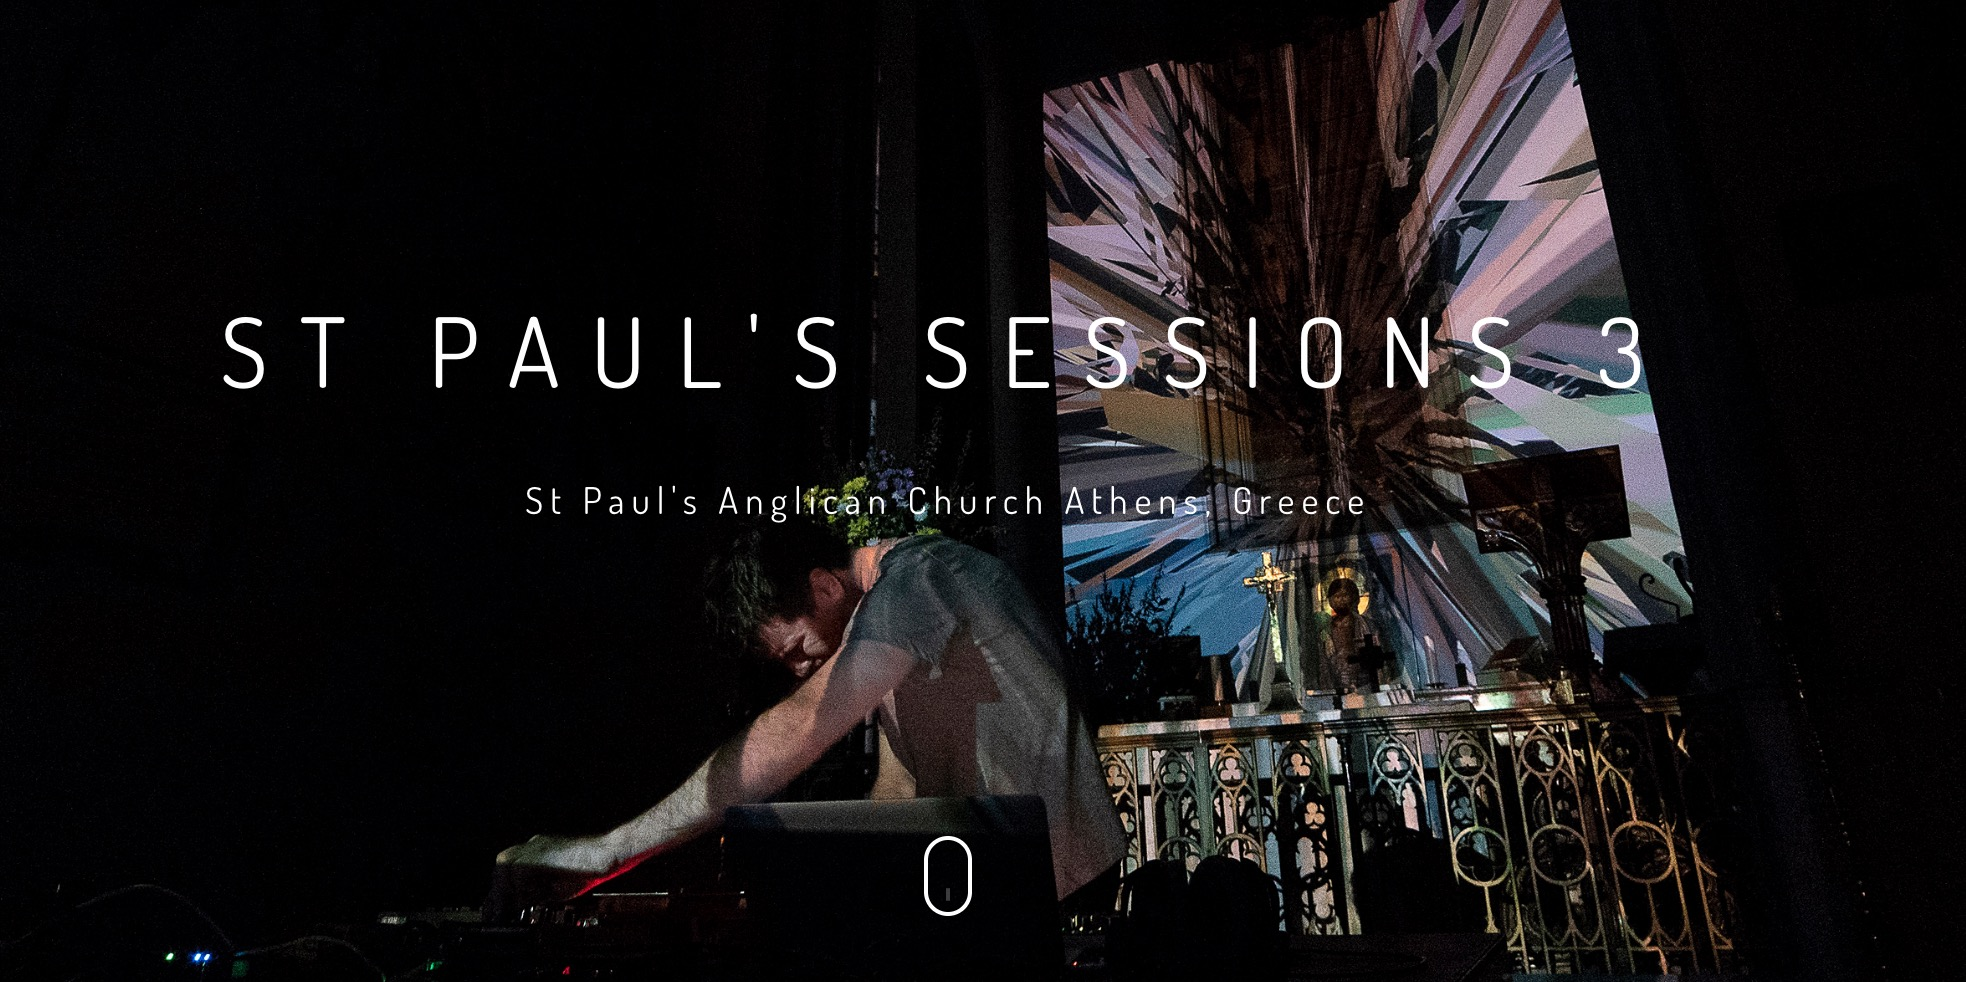 190129-st-pauls-sessions-3-announcement-02